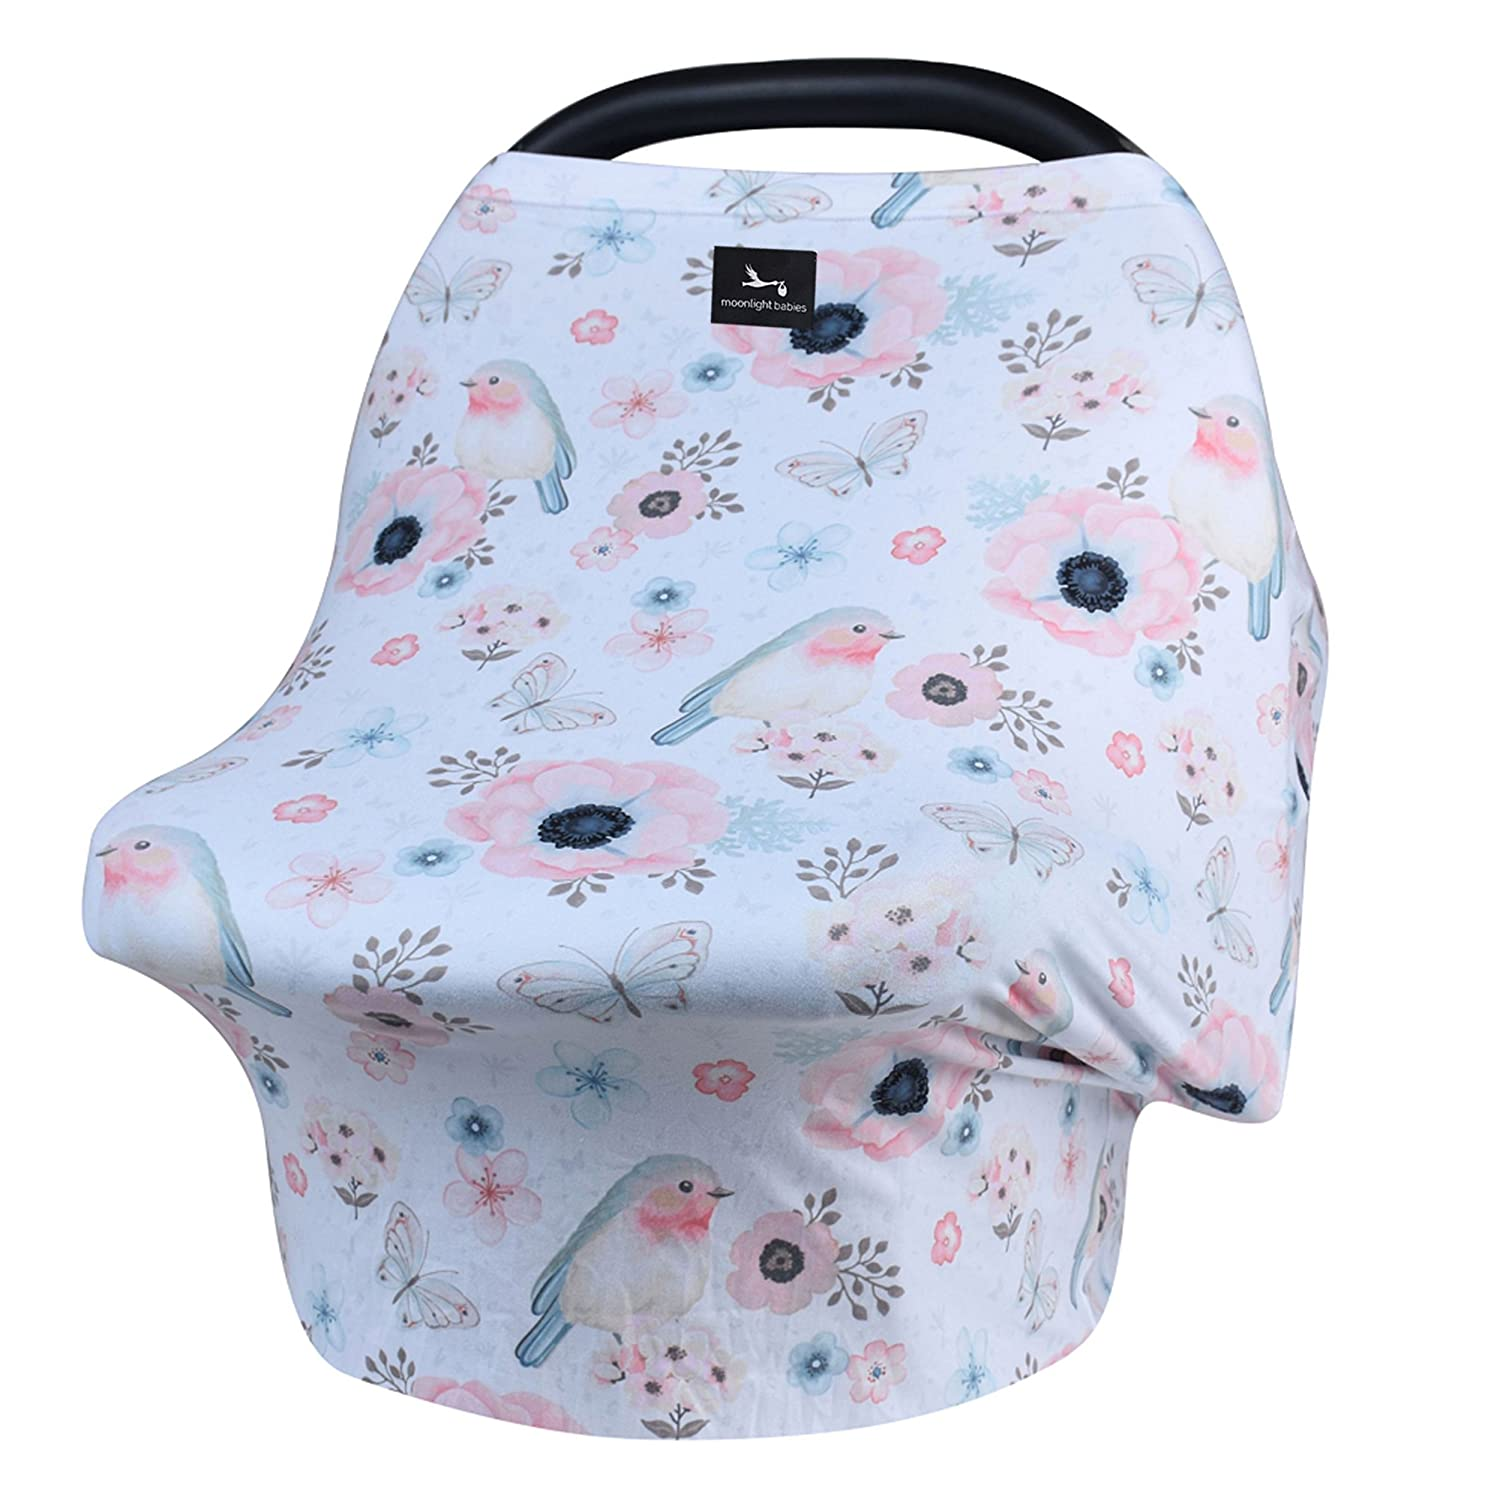 Moonlight Babies Infant Car Seat Canopy Cover   Multi-Use Nursing, Breastfeeding, Shopping Cart Convertable Cover   Ultra Soft Breathable Stretchy   Birds and Flowers